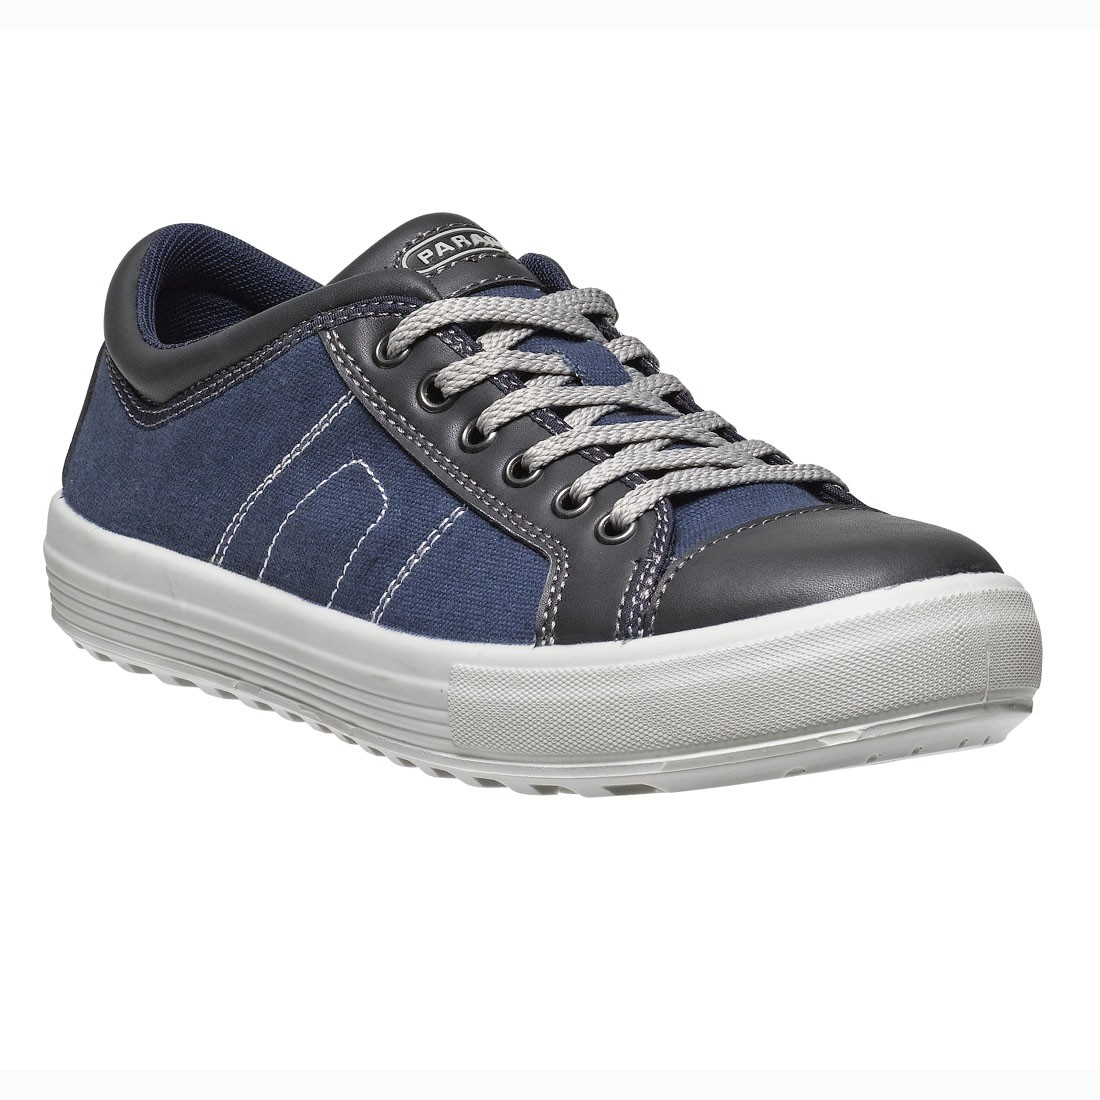 Parade Footwear Vance Unisex Navy and Black Canvas Safety Work Sneakers